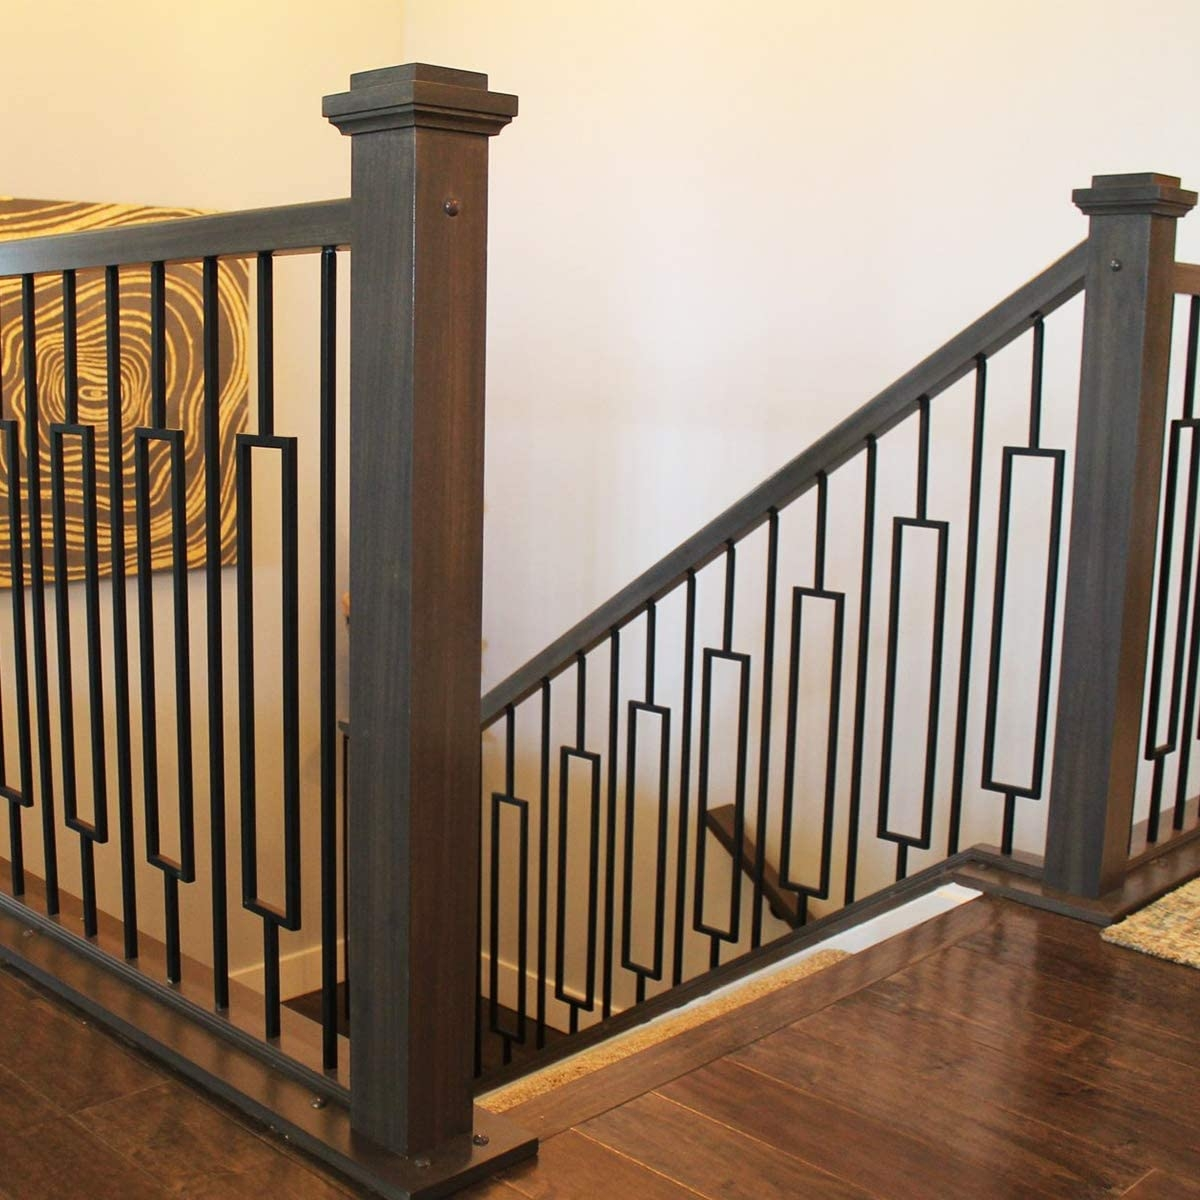 Contemporary Rectangle Stair Wrought Iron Balusters 10 Pack | Black Banister With White Spindles | Brazilian Cherry Stair | Victorian | Traditional Home | Iron Spindle White Catwalk Brown Railing | Gray